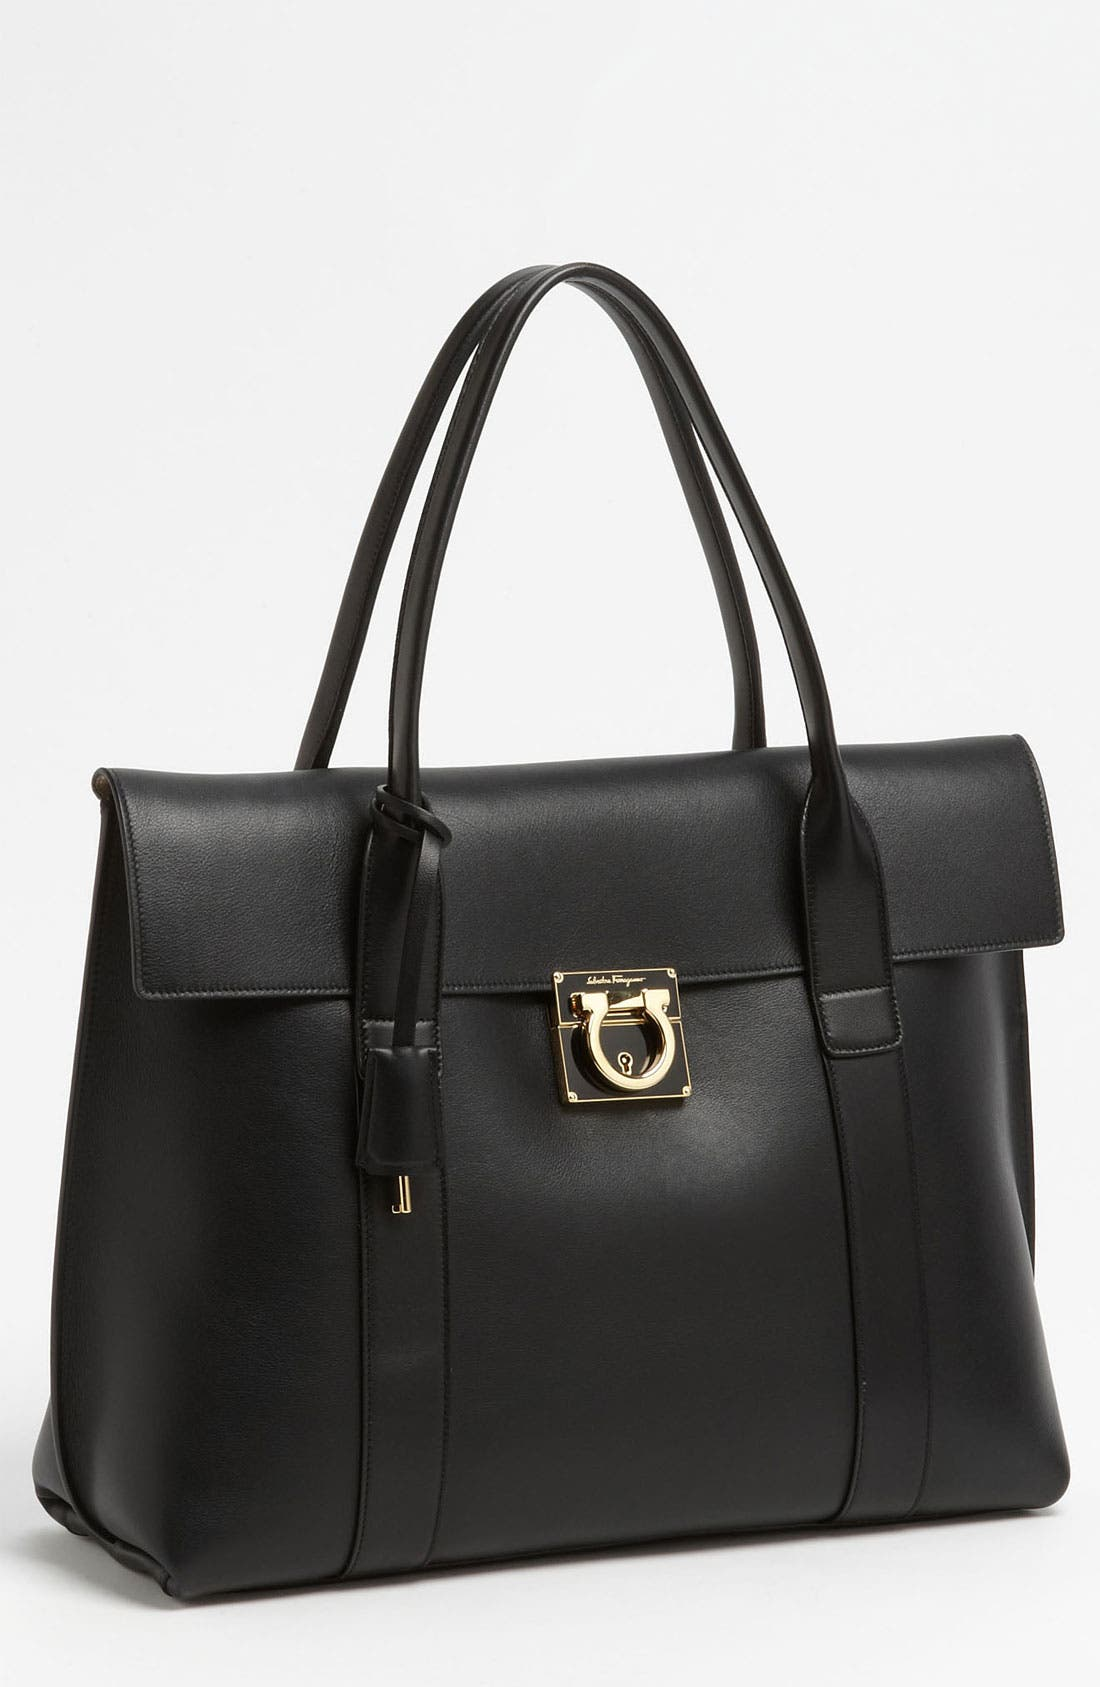 Alternate Image 1 Selected - Salvatore Ferragamo 'Large Sookie' Leather Satchel